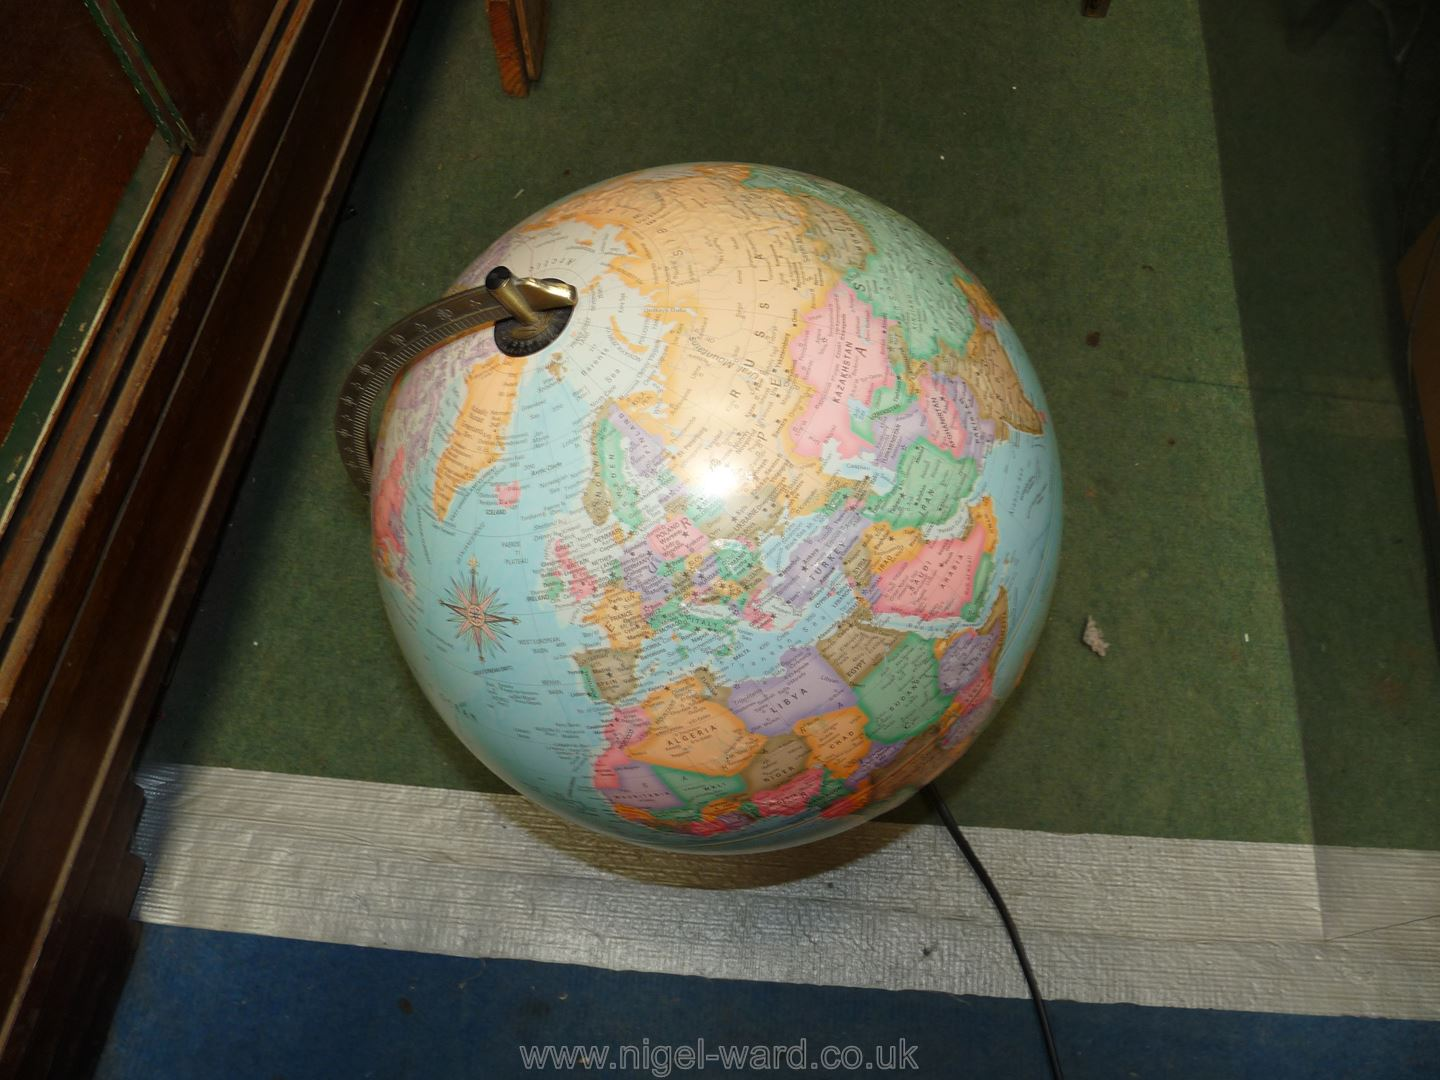 An illuminated 'The Political world' globe by Micador with raised mountain ranges. - Image 3 of 3